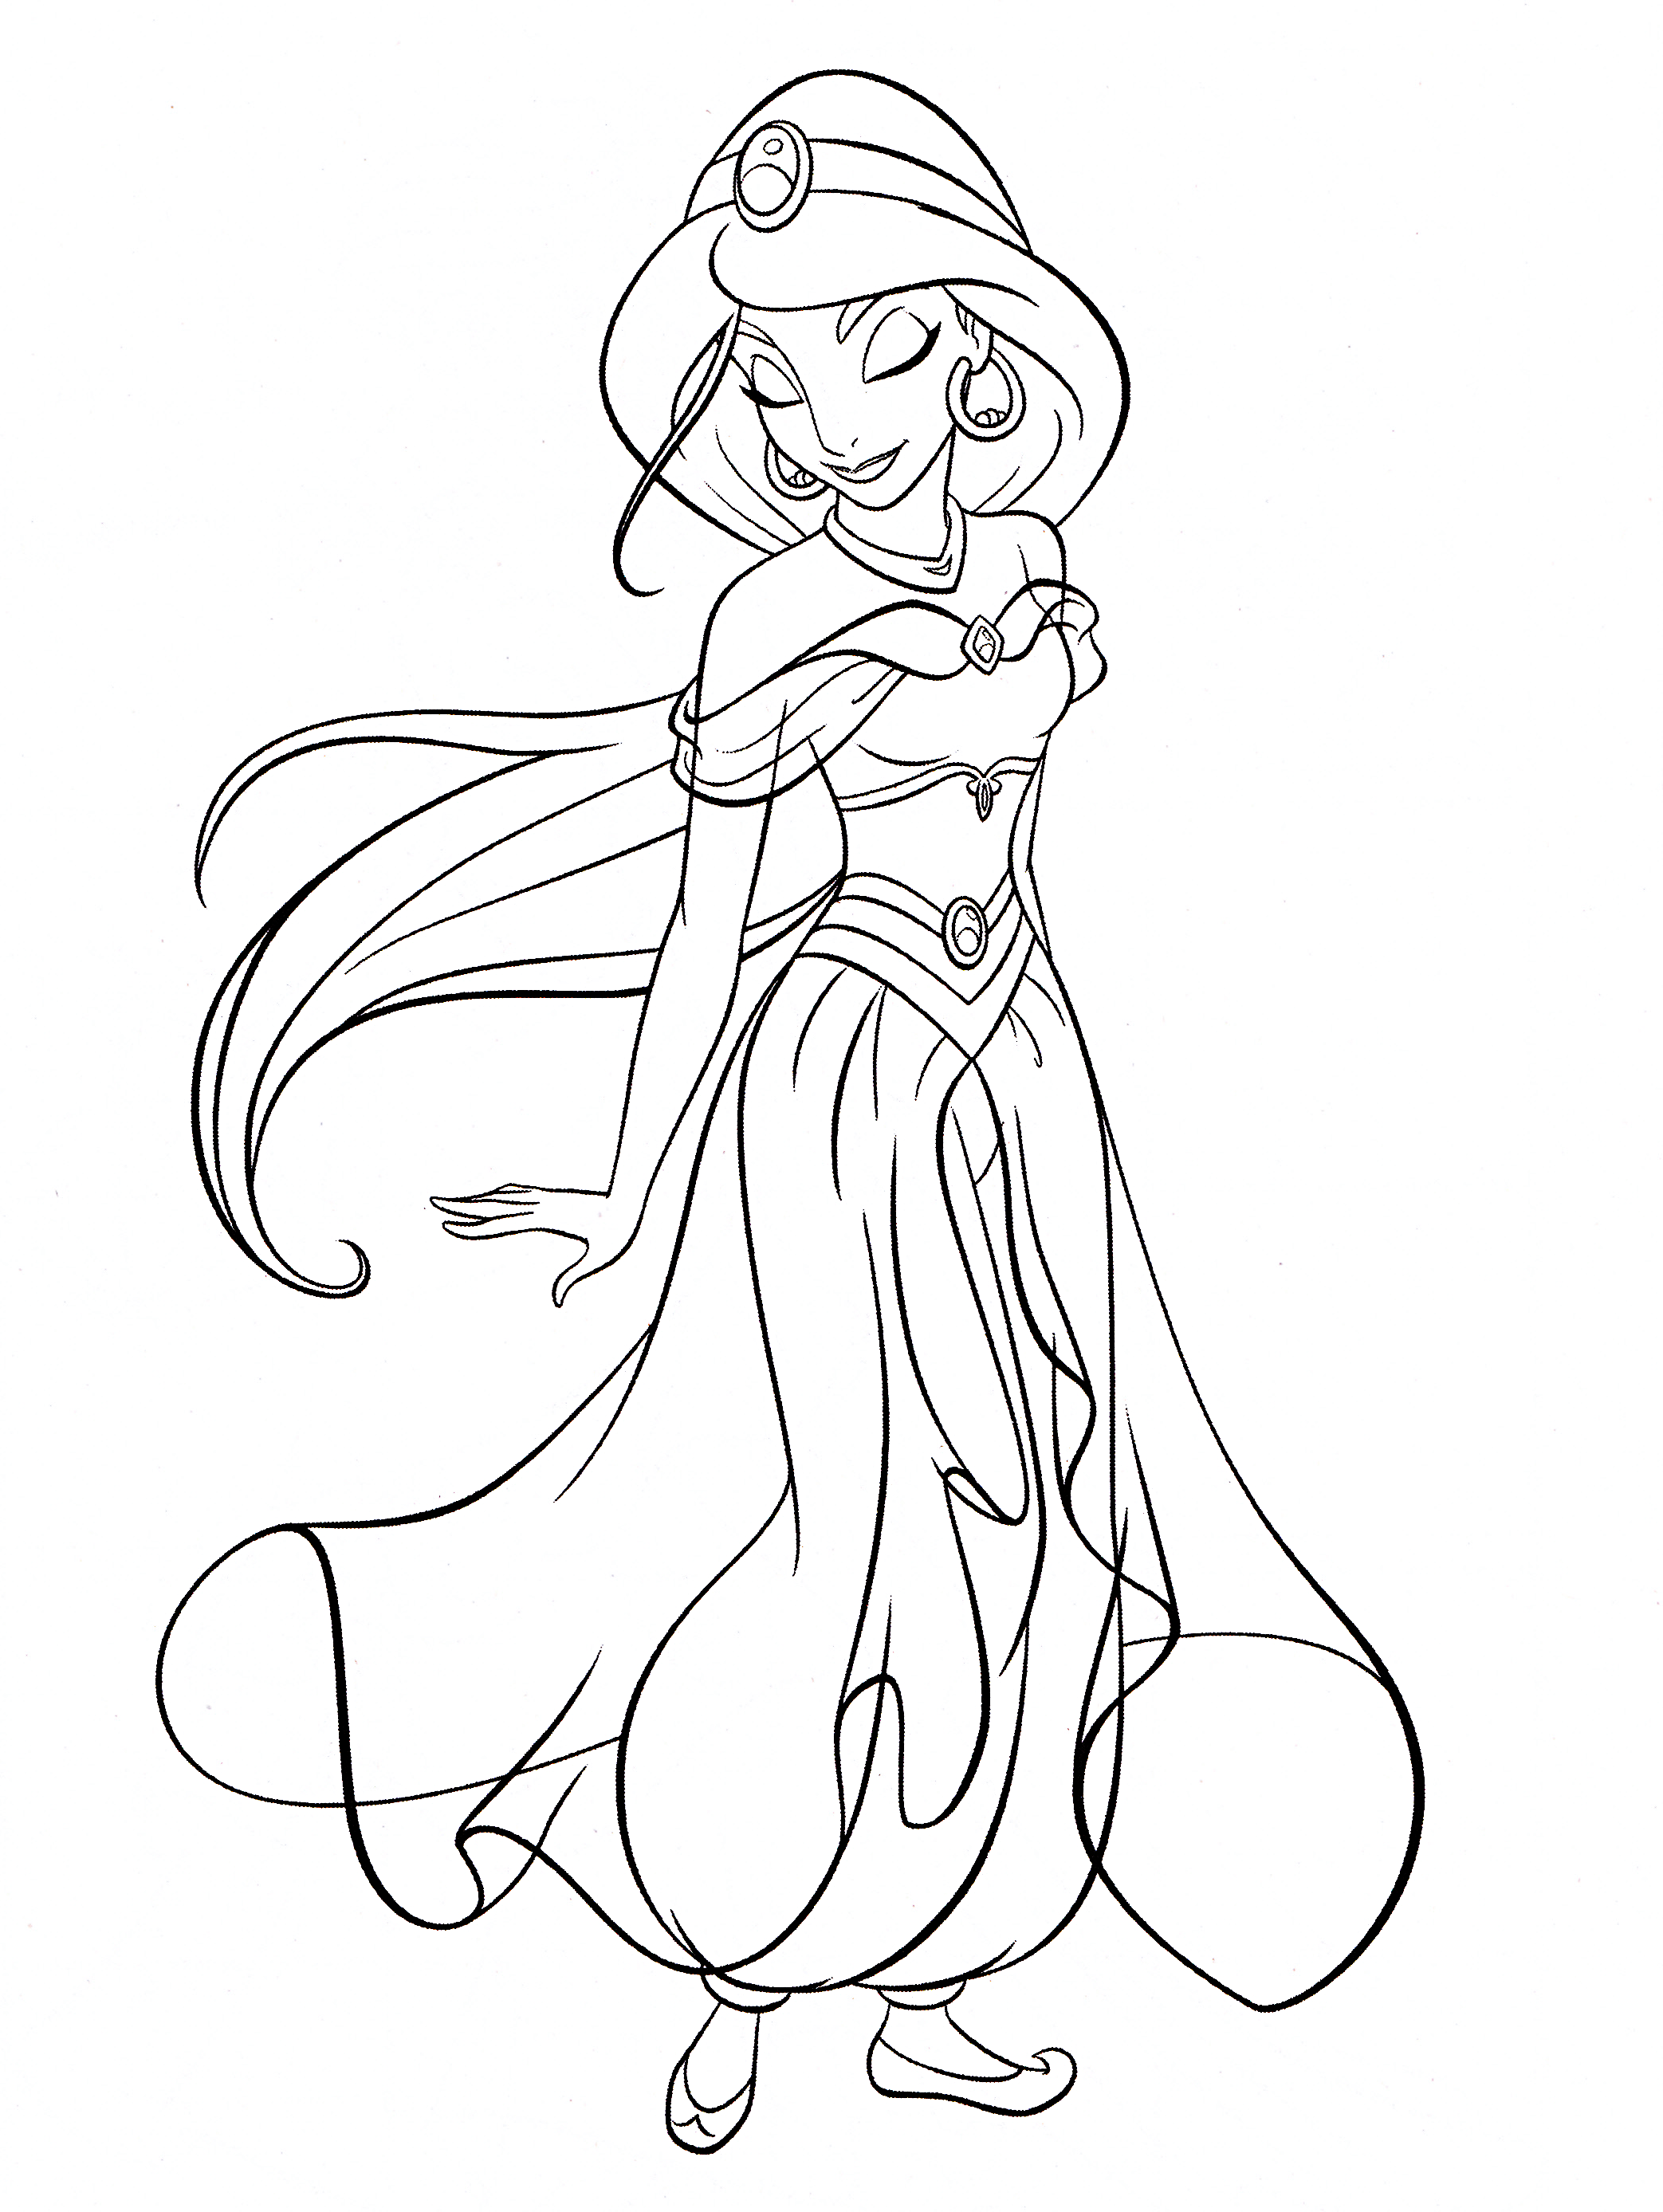 Coloring Pages Walt Disney : Walt disney characters images coloring pages